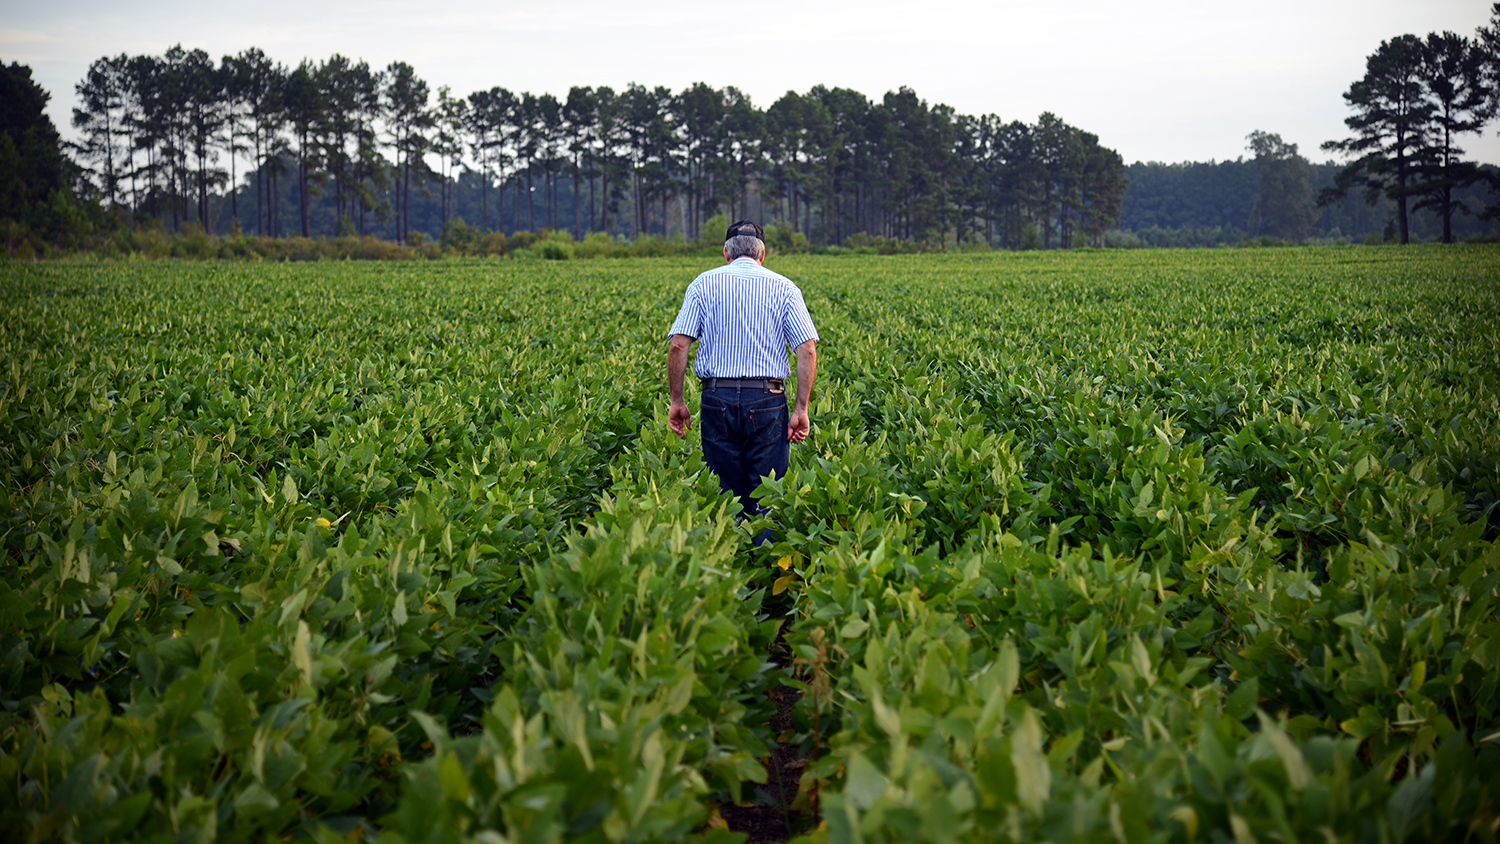 Farmer walking amongst his soybean field.